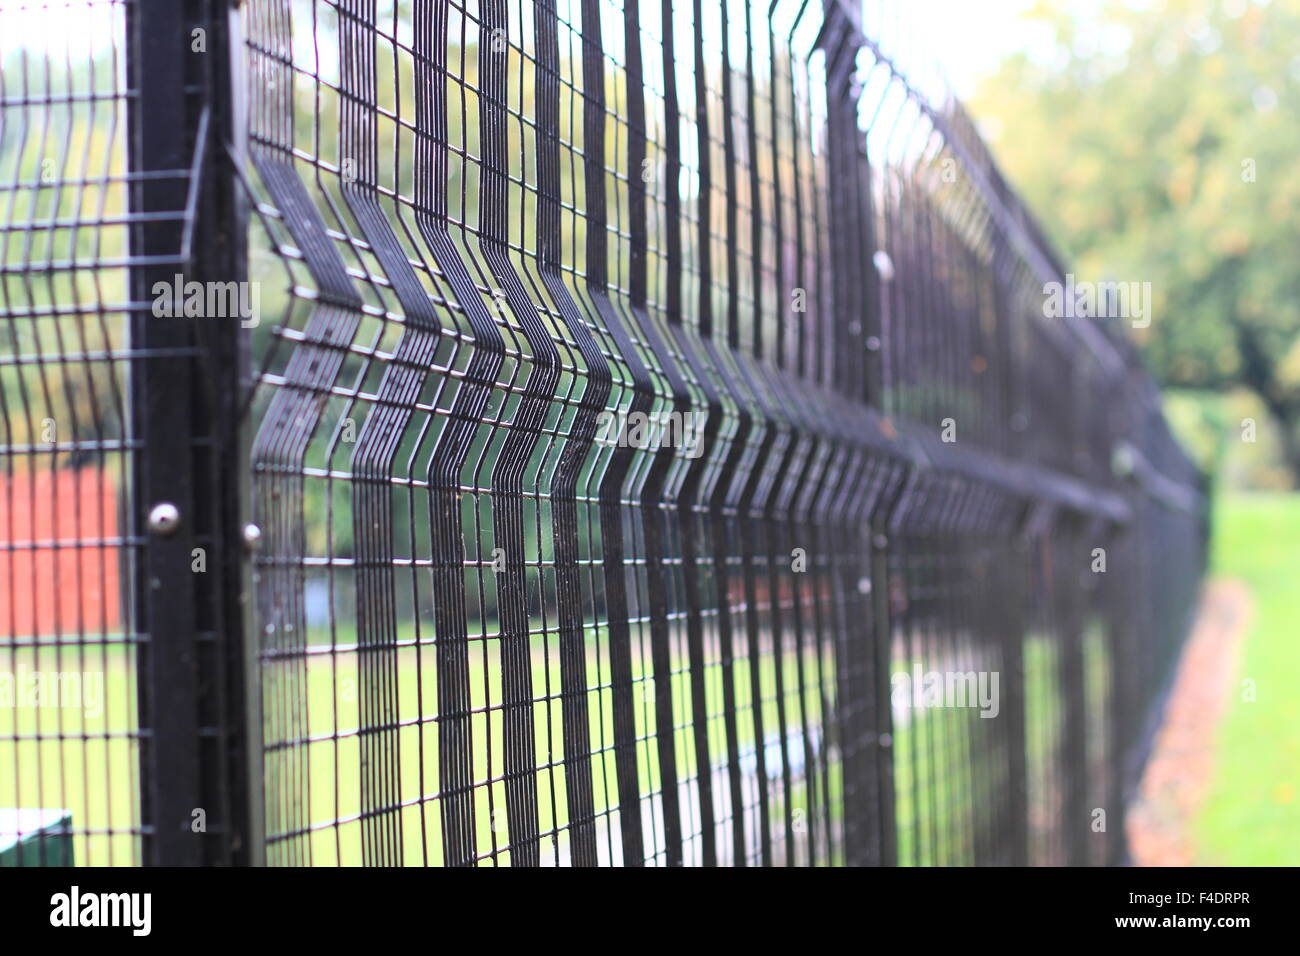 black wire fence - Stock Image